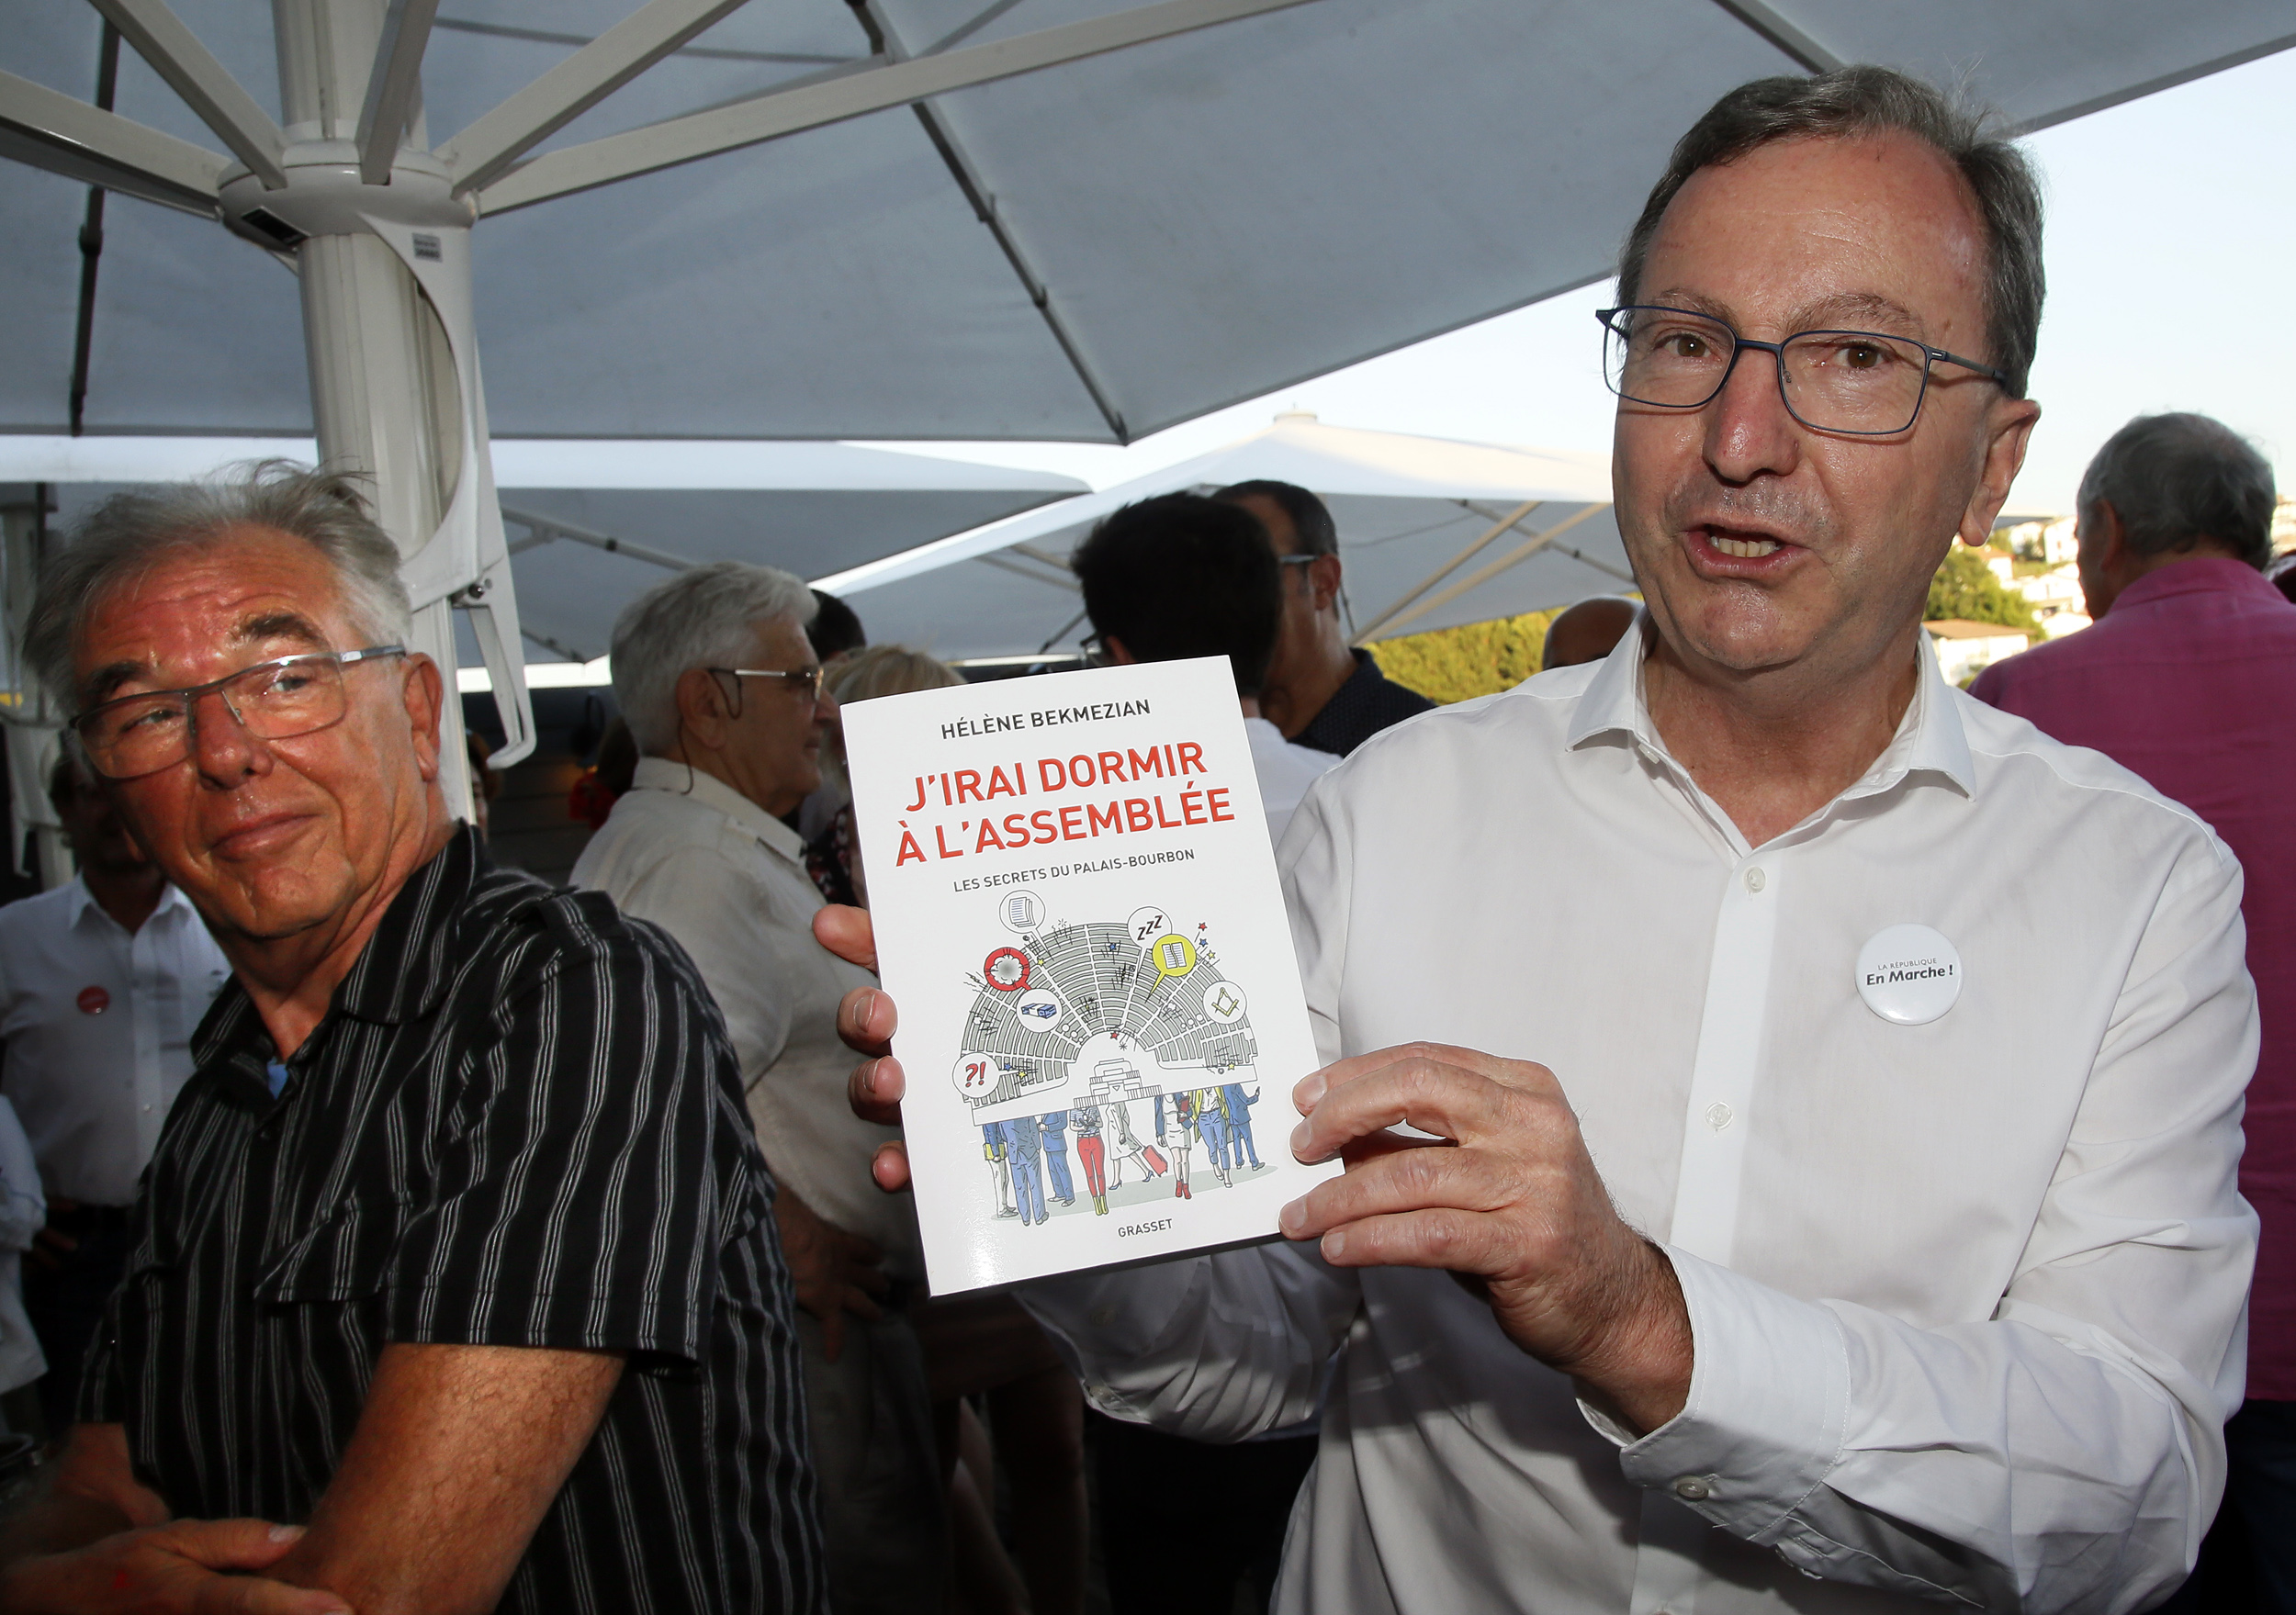 Lasserre-David, Bru and Lasselle will be the members of the Basque electoral districts in Paris.